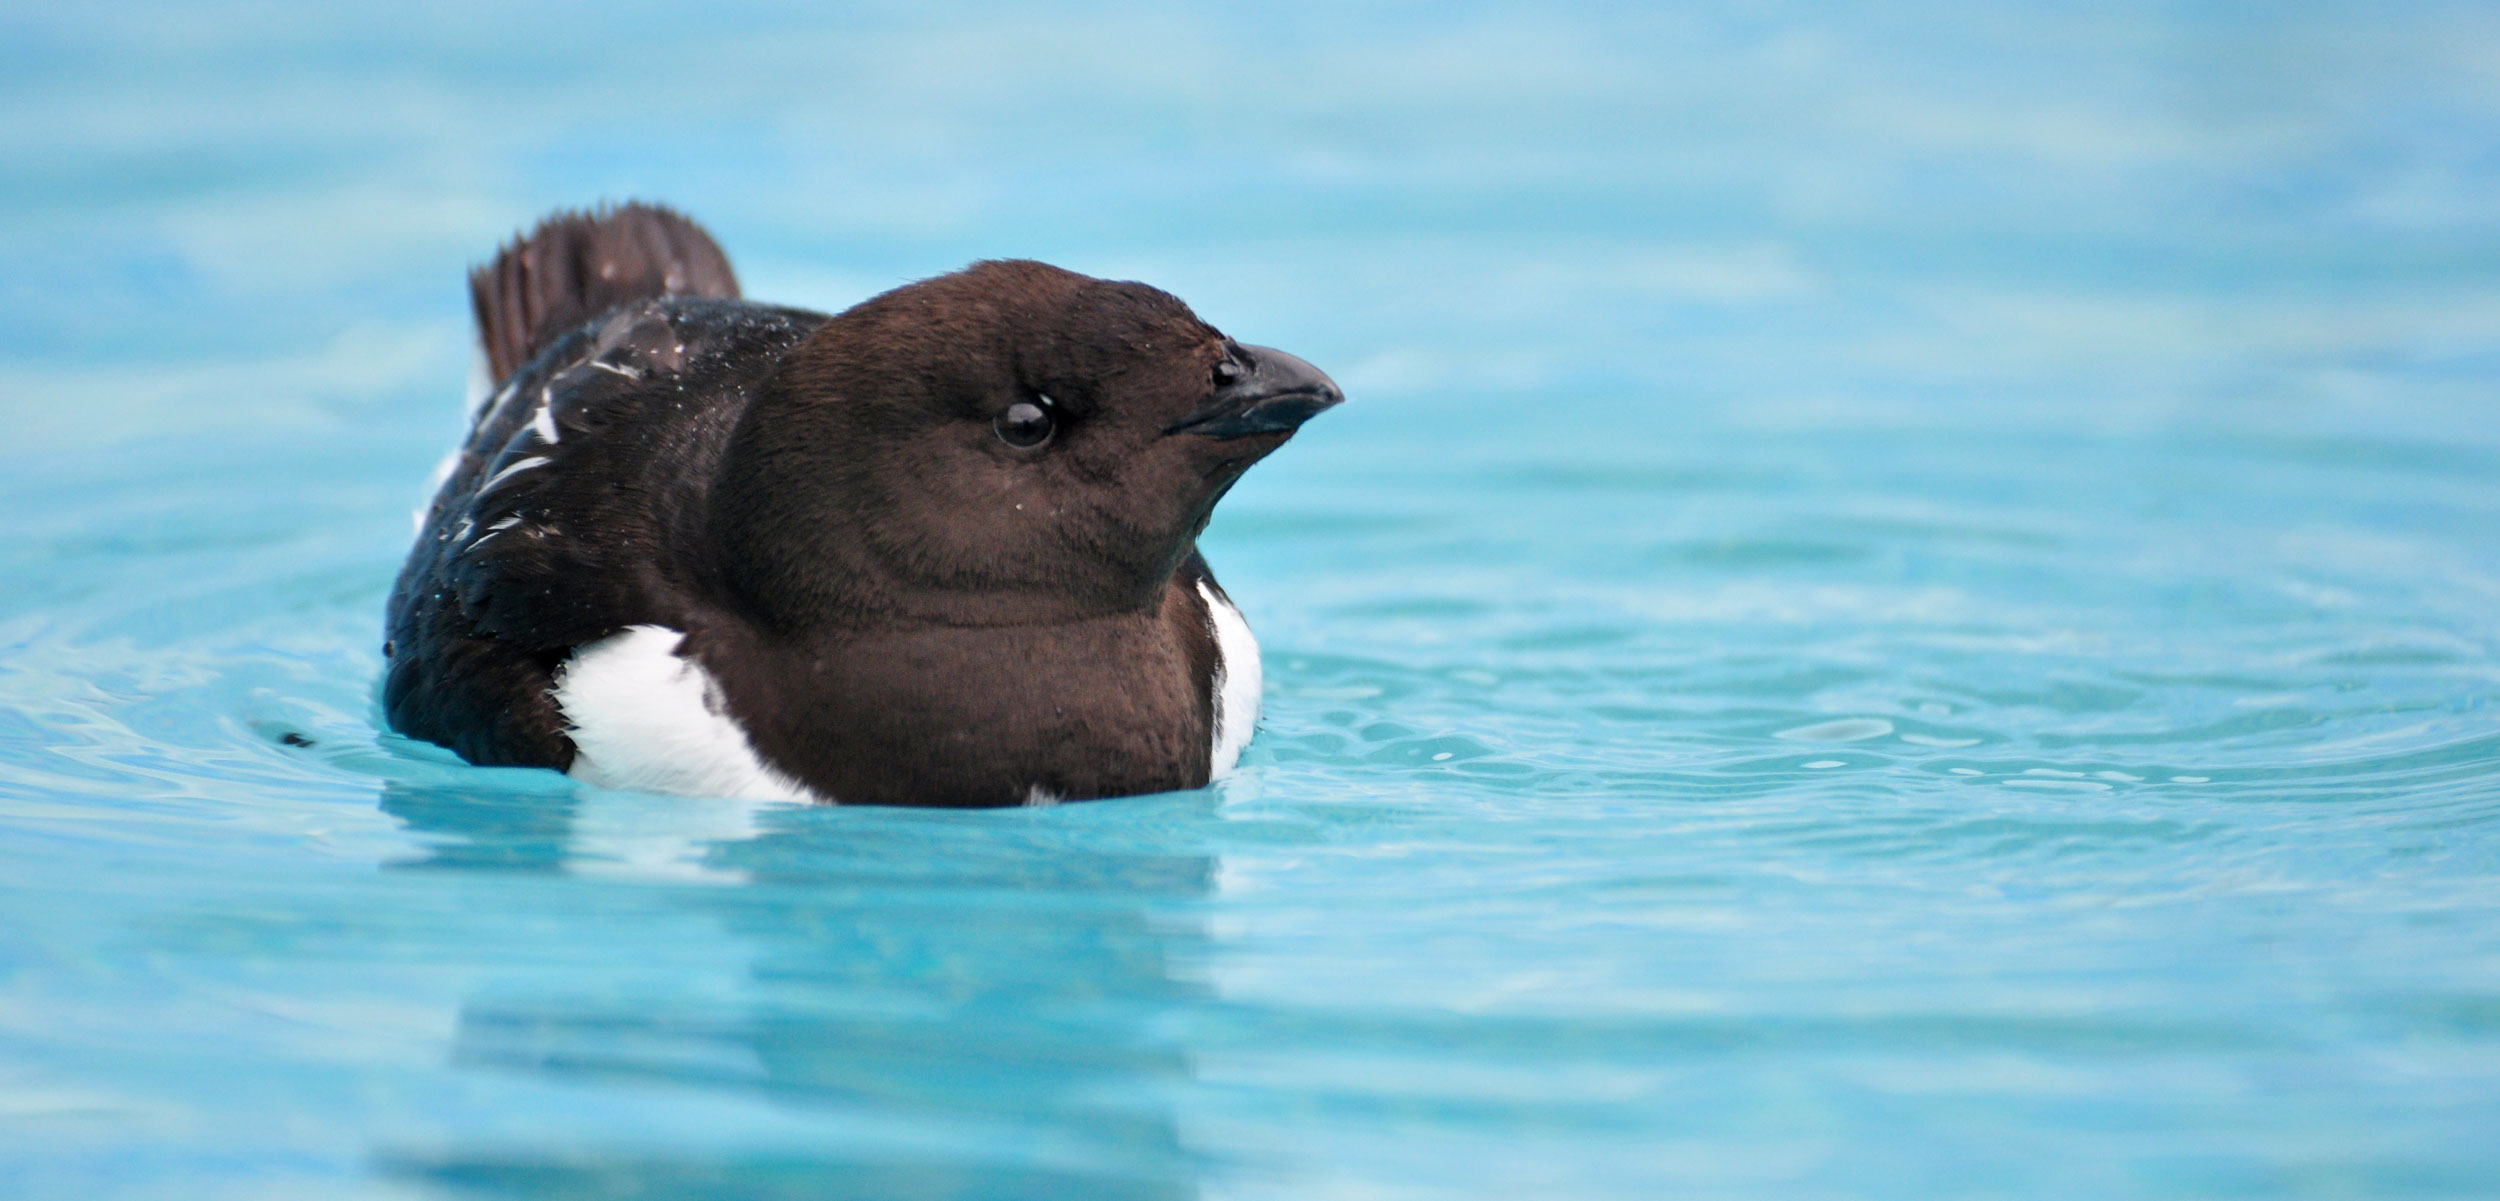 a little auk floating on a swimming pool